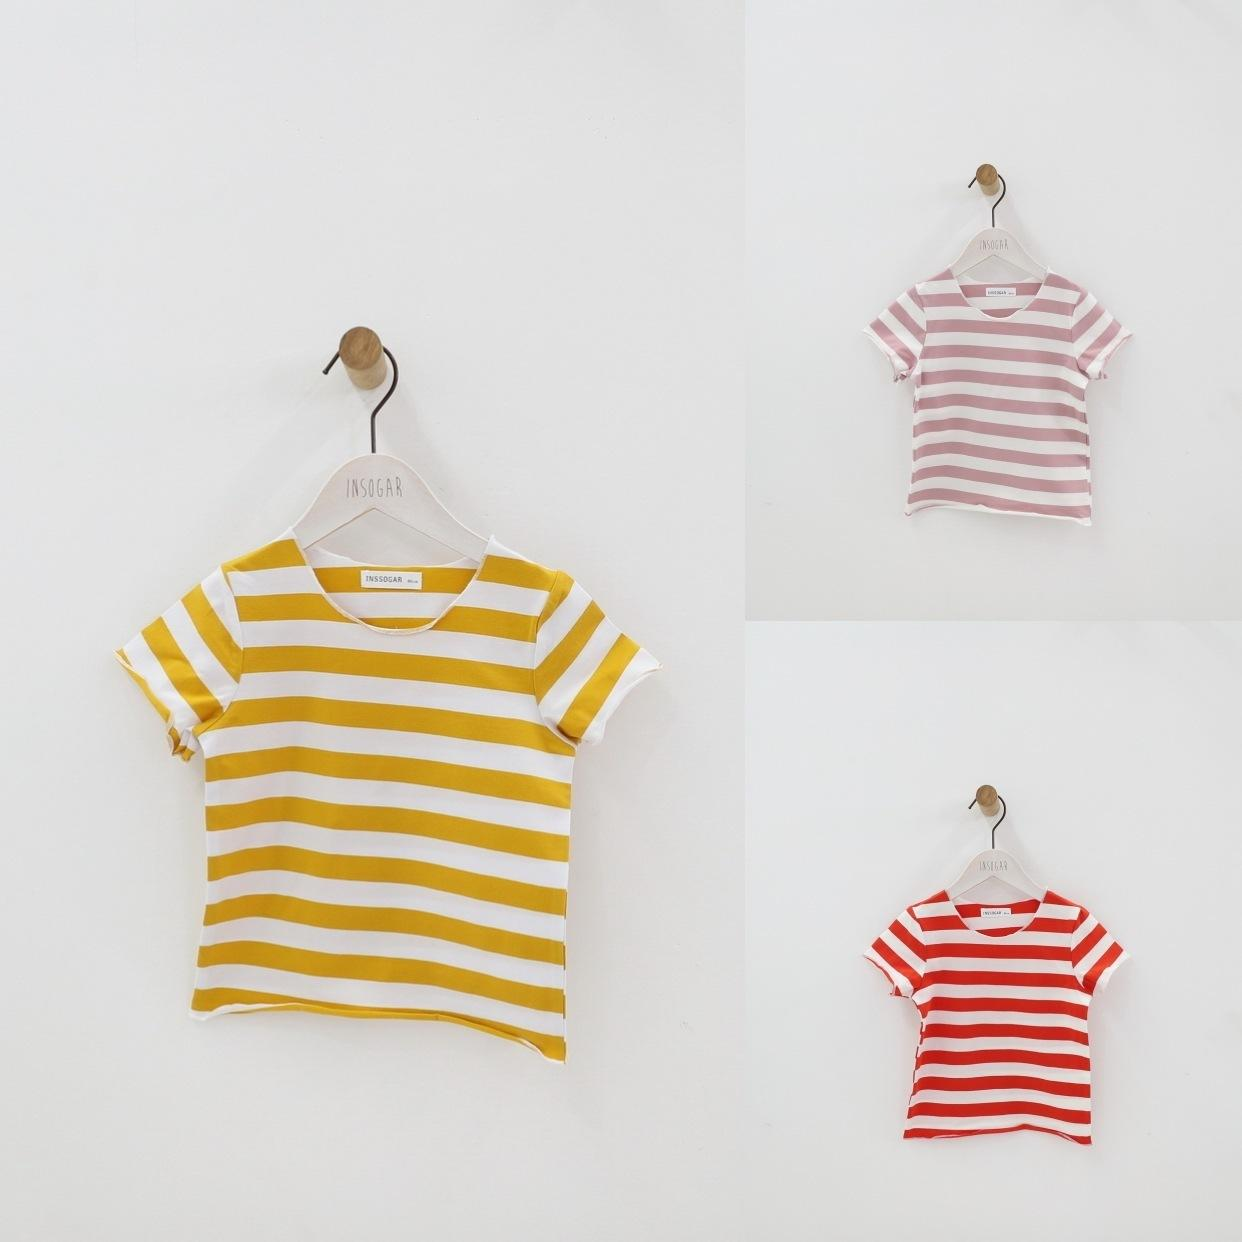 Summer Children T Shirt Casual Simple Baby Girls Boys Soft Cotton Tops Kid Toddler Short Sleeve Striped T-shirts Kids Clothing J190611